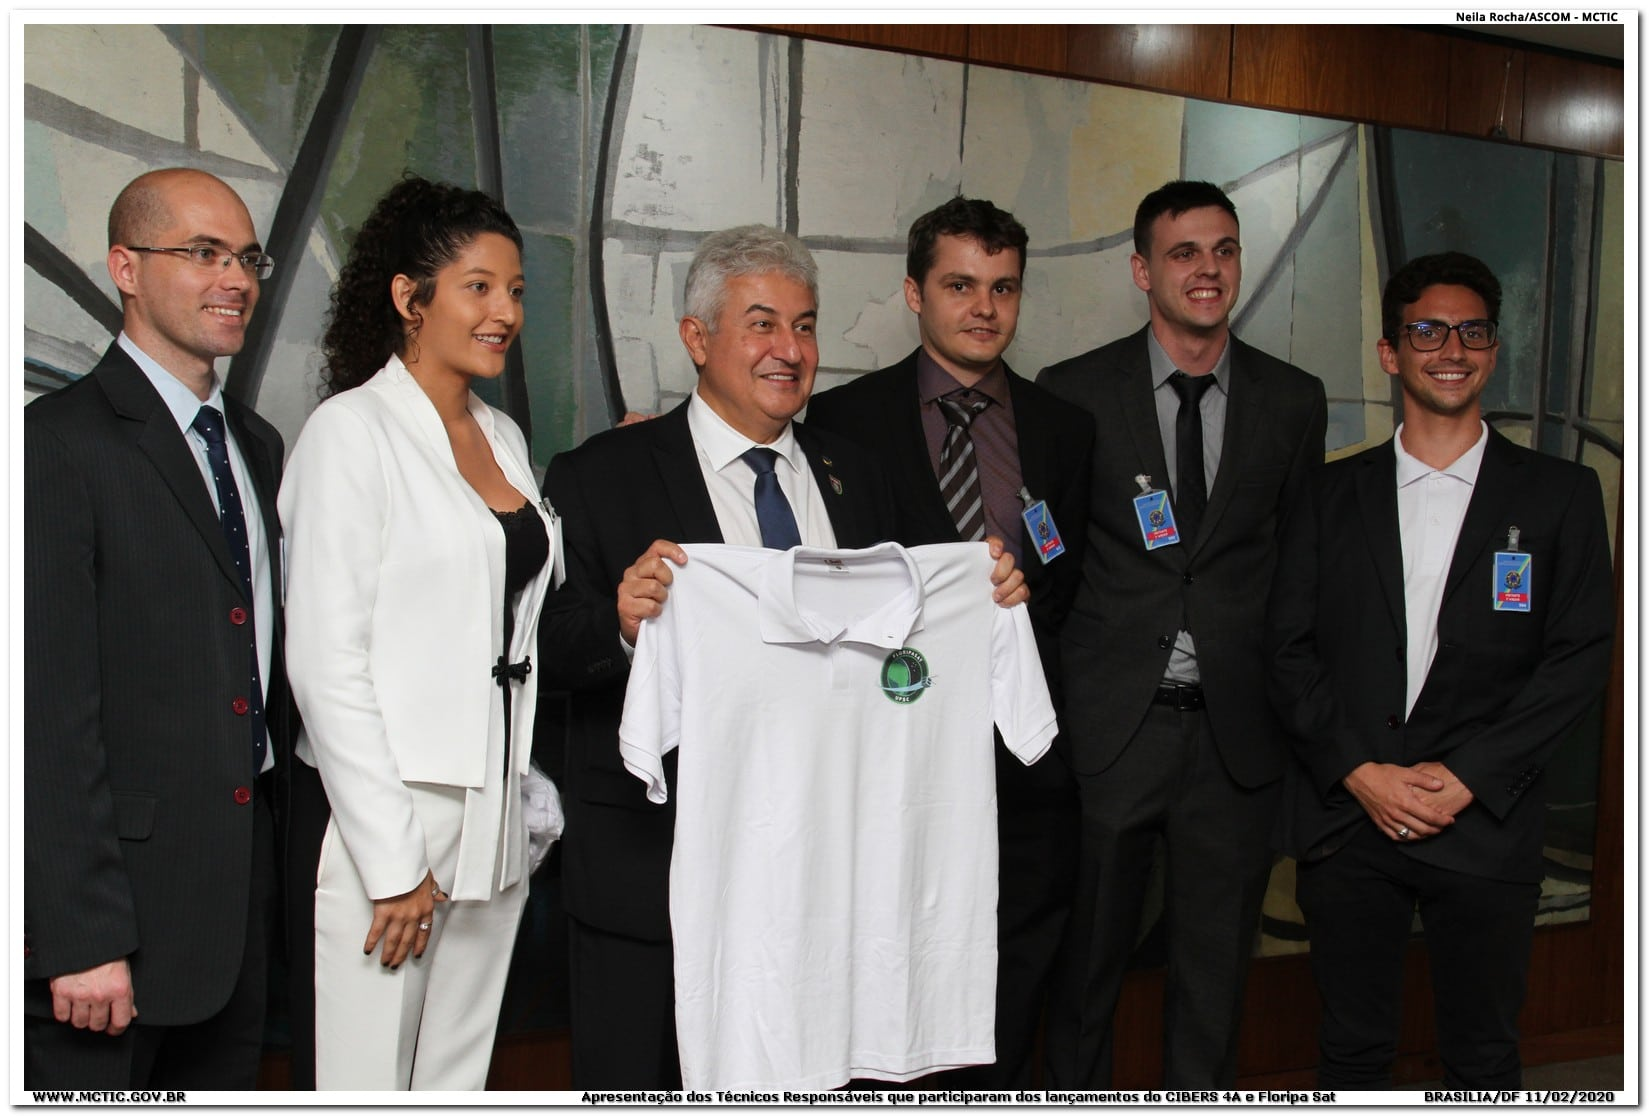 Marcos Pontes receives commemorative T-shirt from FloripaSat-1